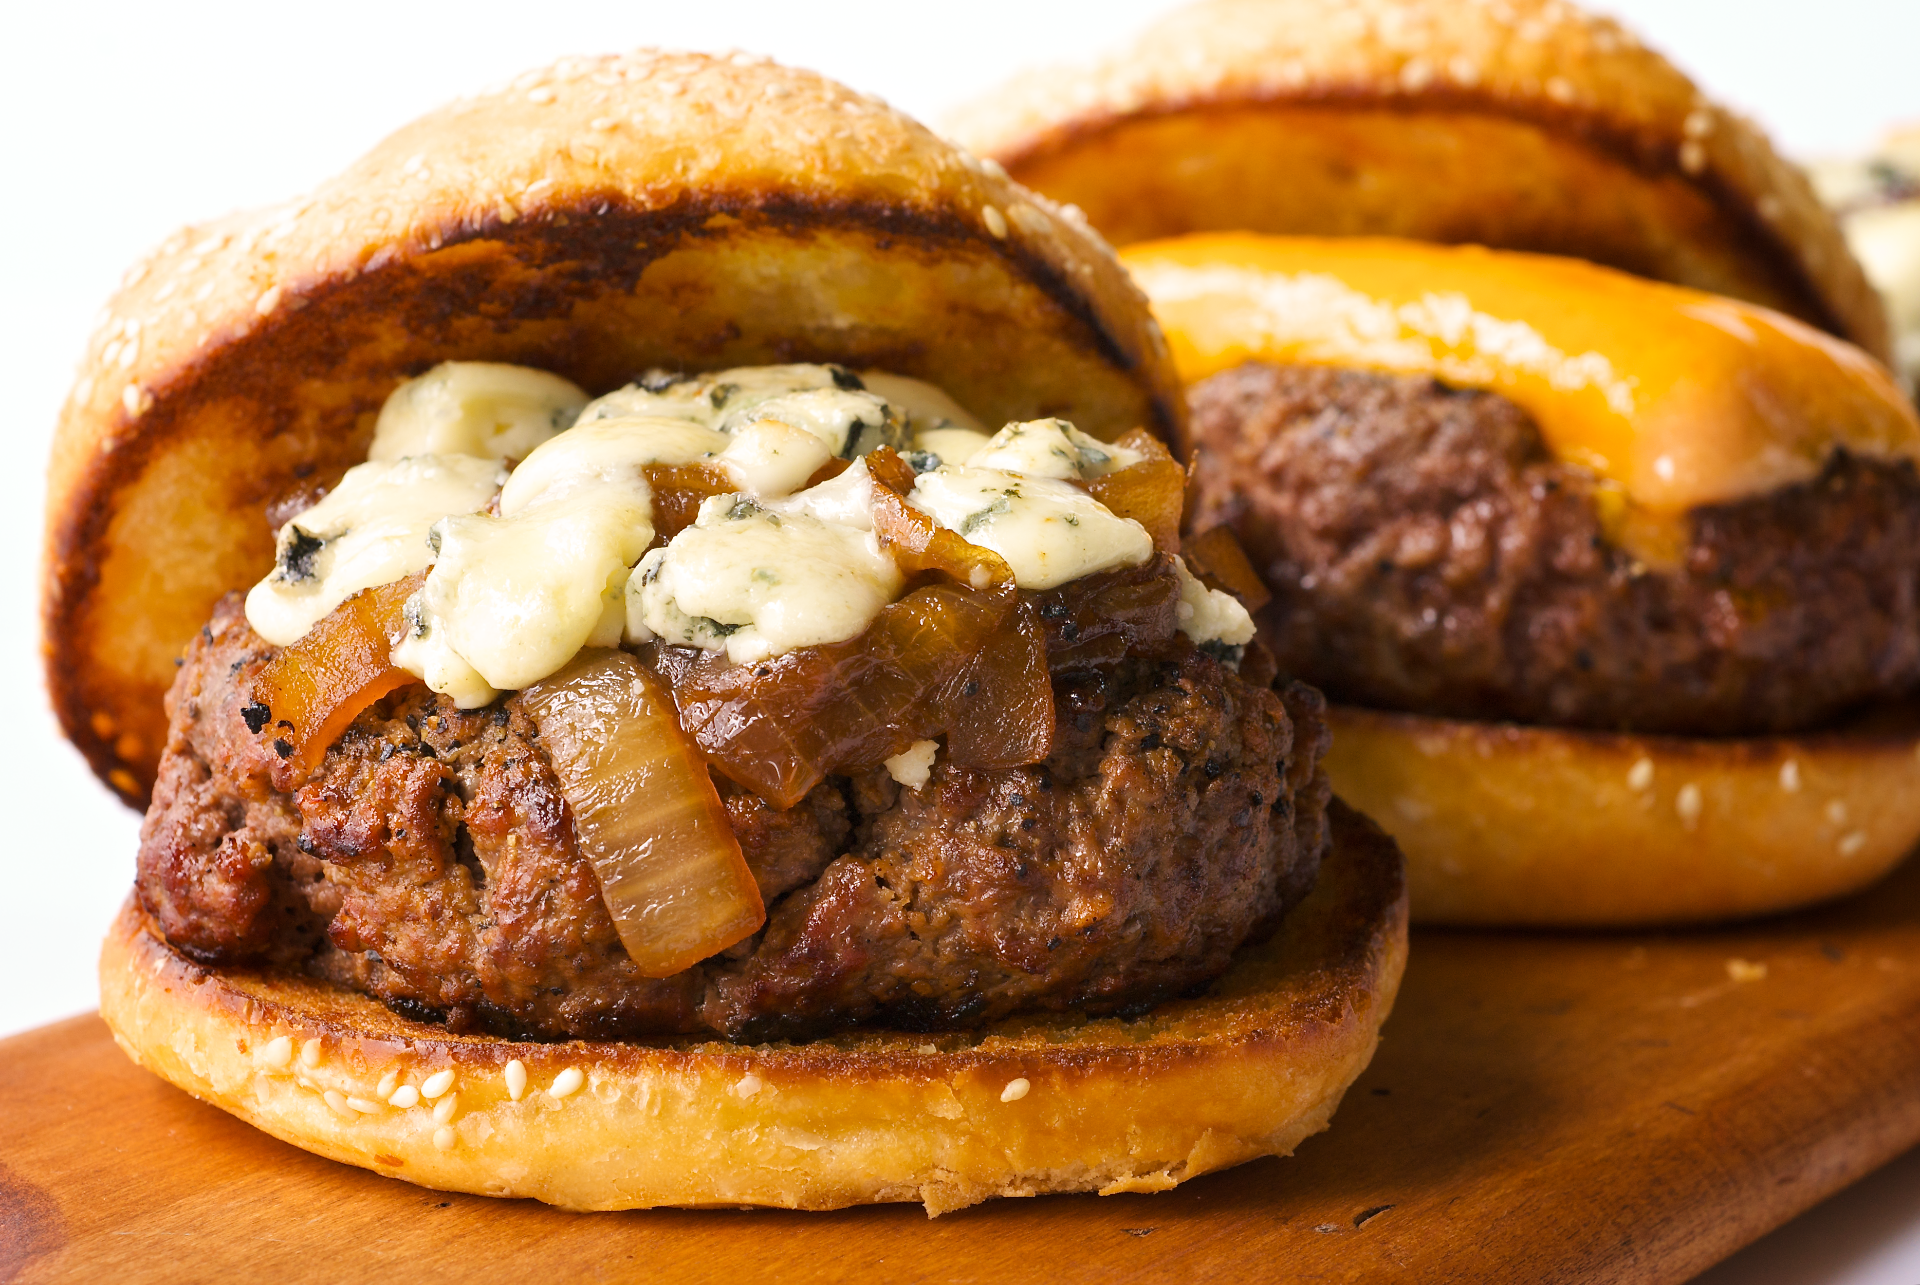 This delicious burger features beef patties, kosher salt, pepper, steak sauce, caramelized onions and sugar, and oh-so-flavorful bleu cheese.